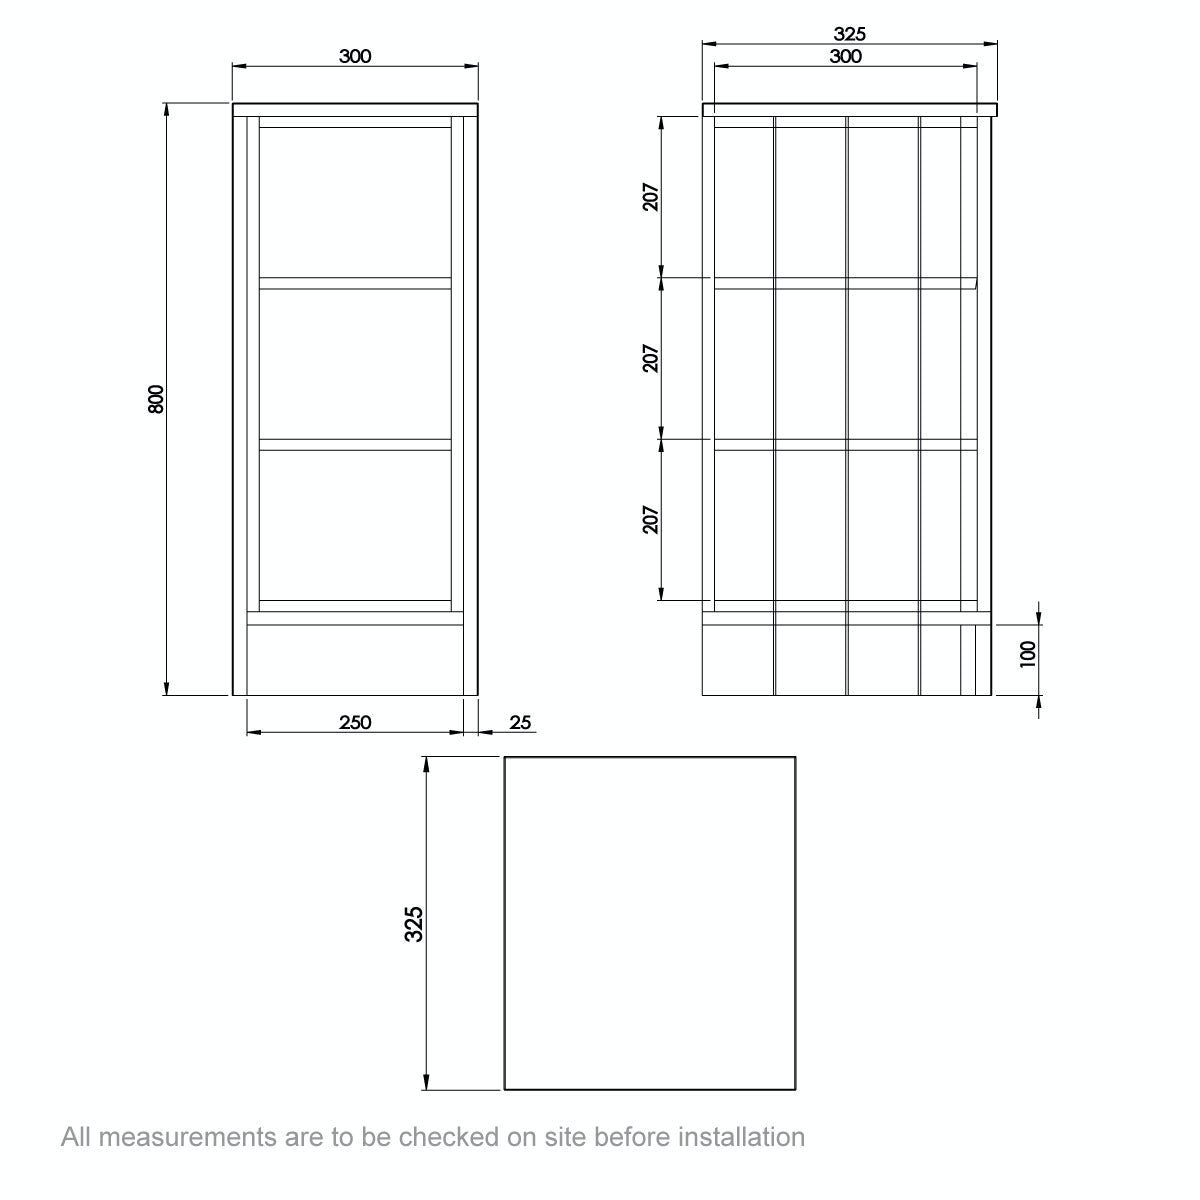 Dimensions for The Bath Co. Dulwich ivory open storage unit